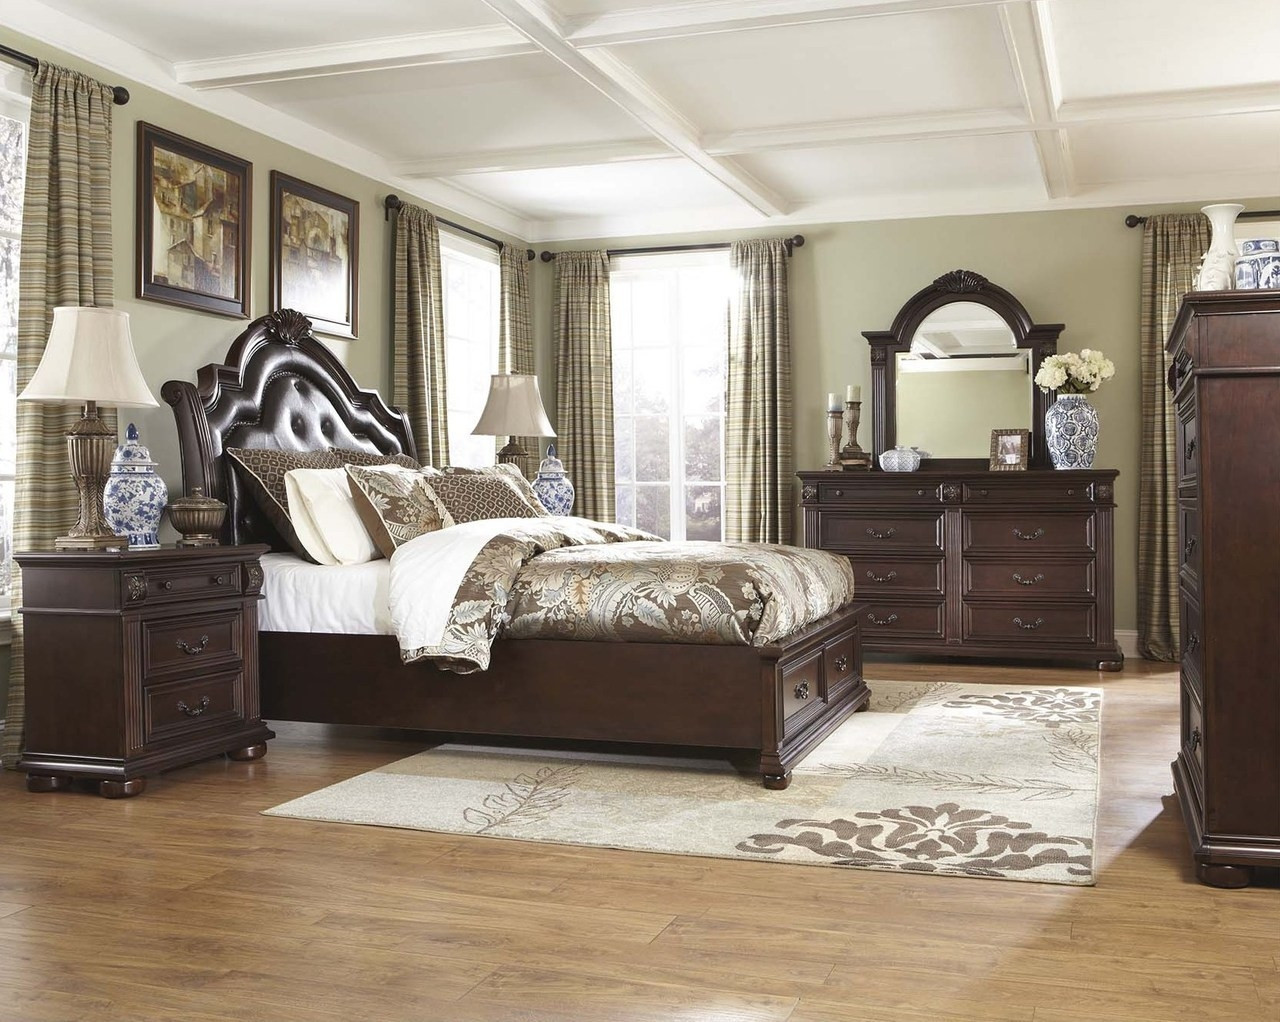 Best ideas about Master Bedroom Sets . Save or Pin Bedroom Give Your Bedroom Cozy Nuance With Master Bedroom Now.